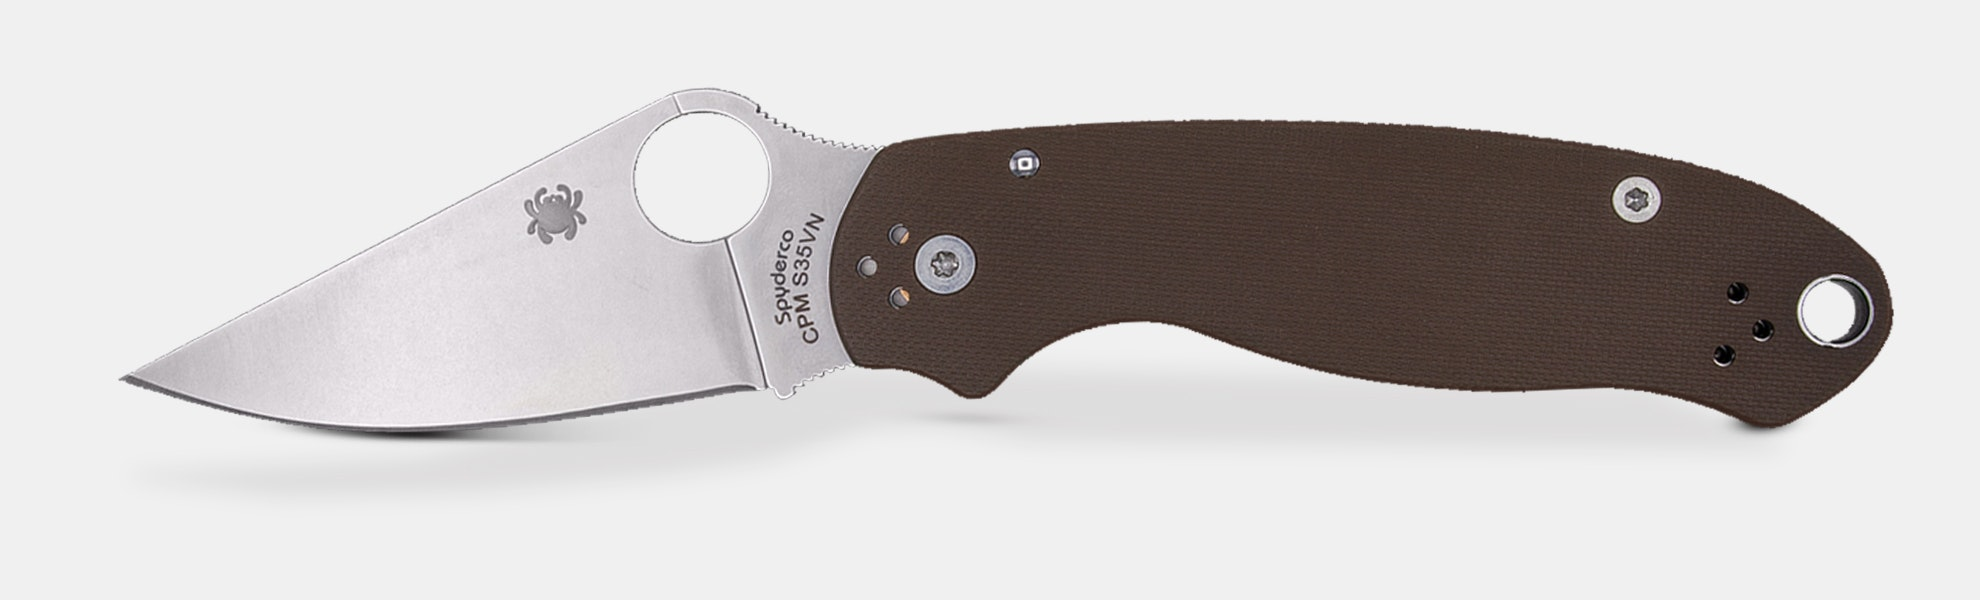 Spyderco Para 3 Limited-Edition S35VN Earth Brown